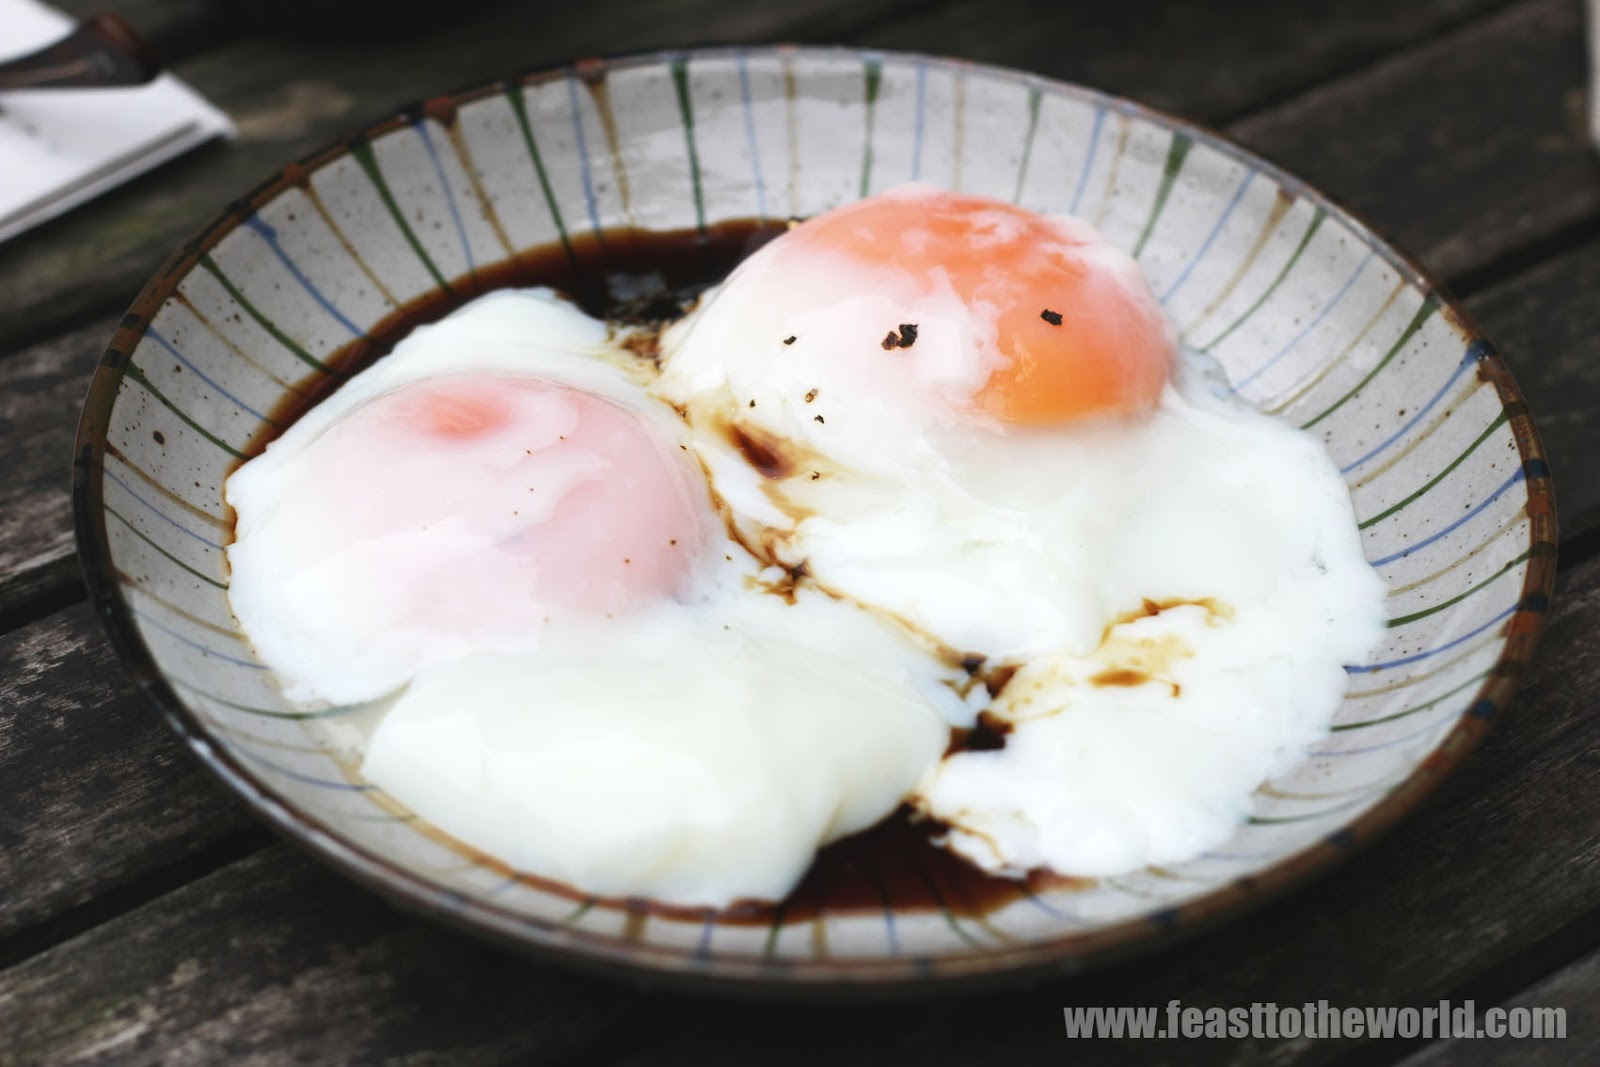 FEAST to the world: Singapore Half-Boiled Eggs - 100% Pure Egg ...